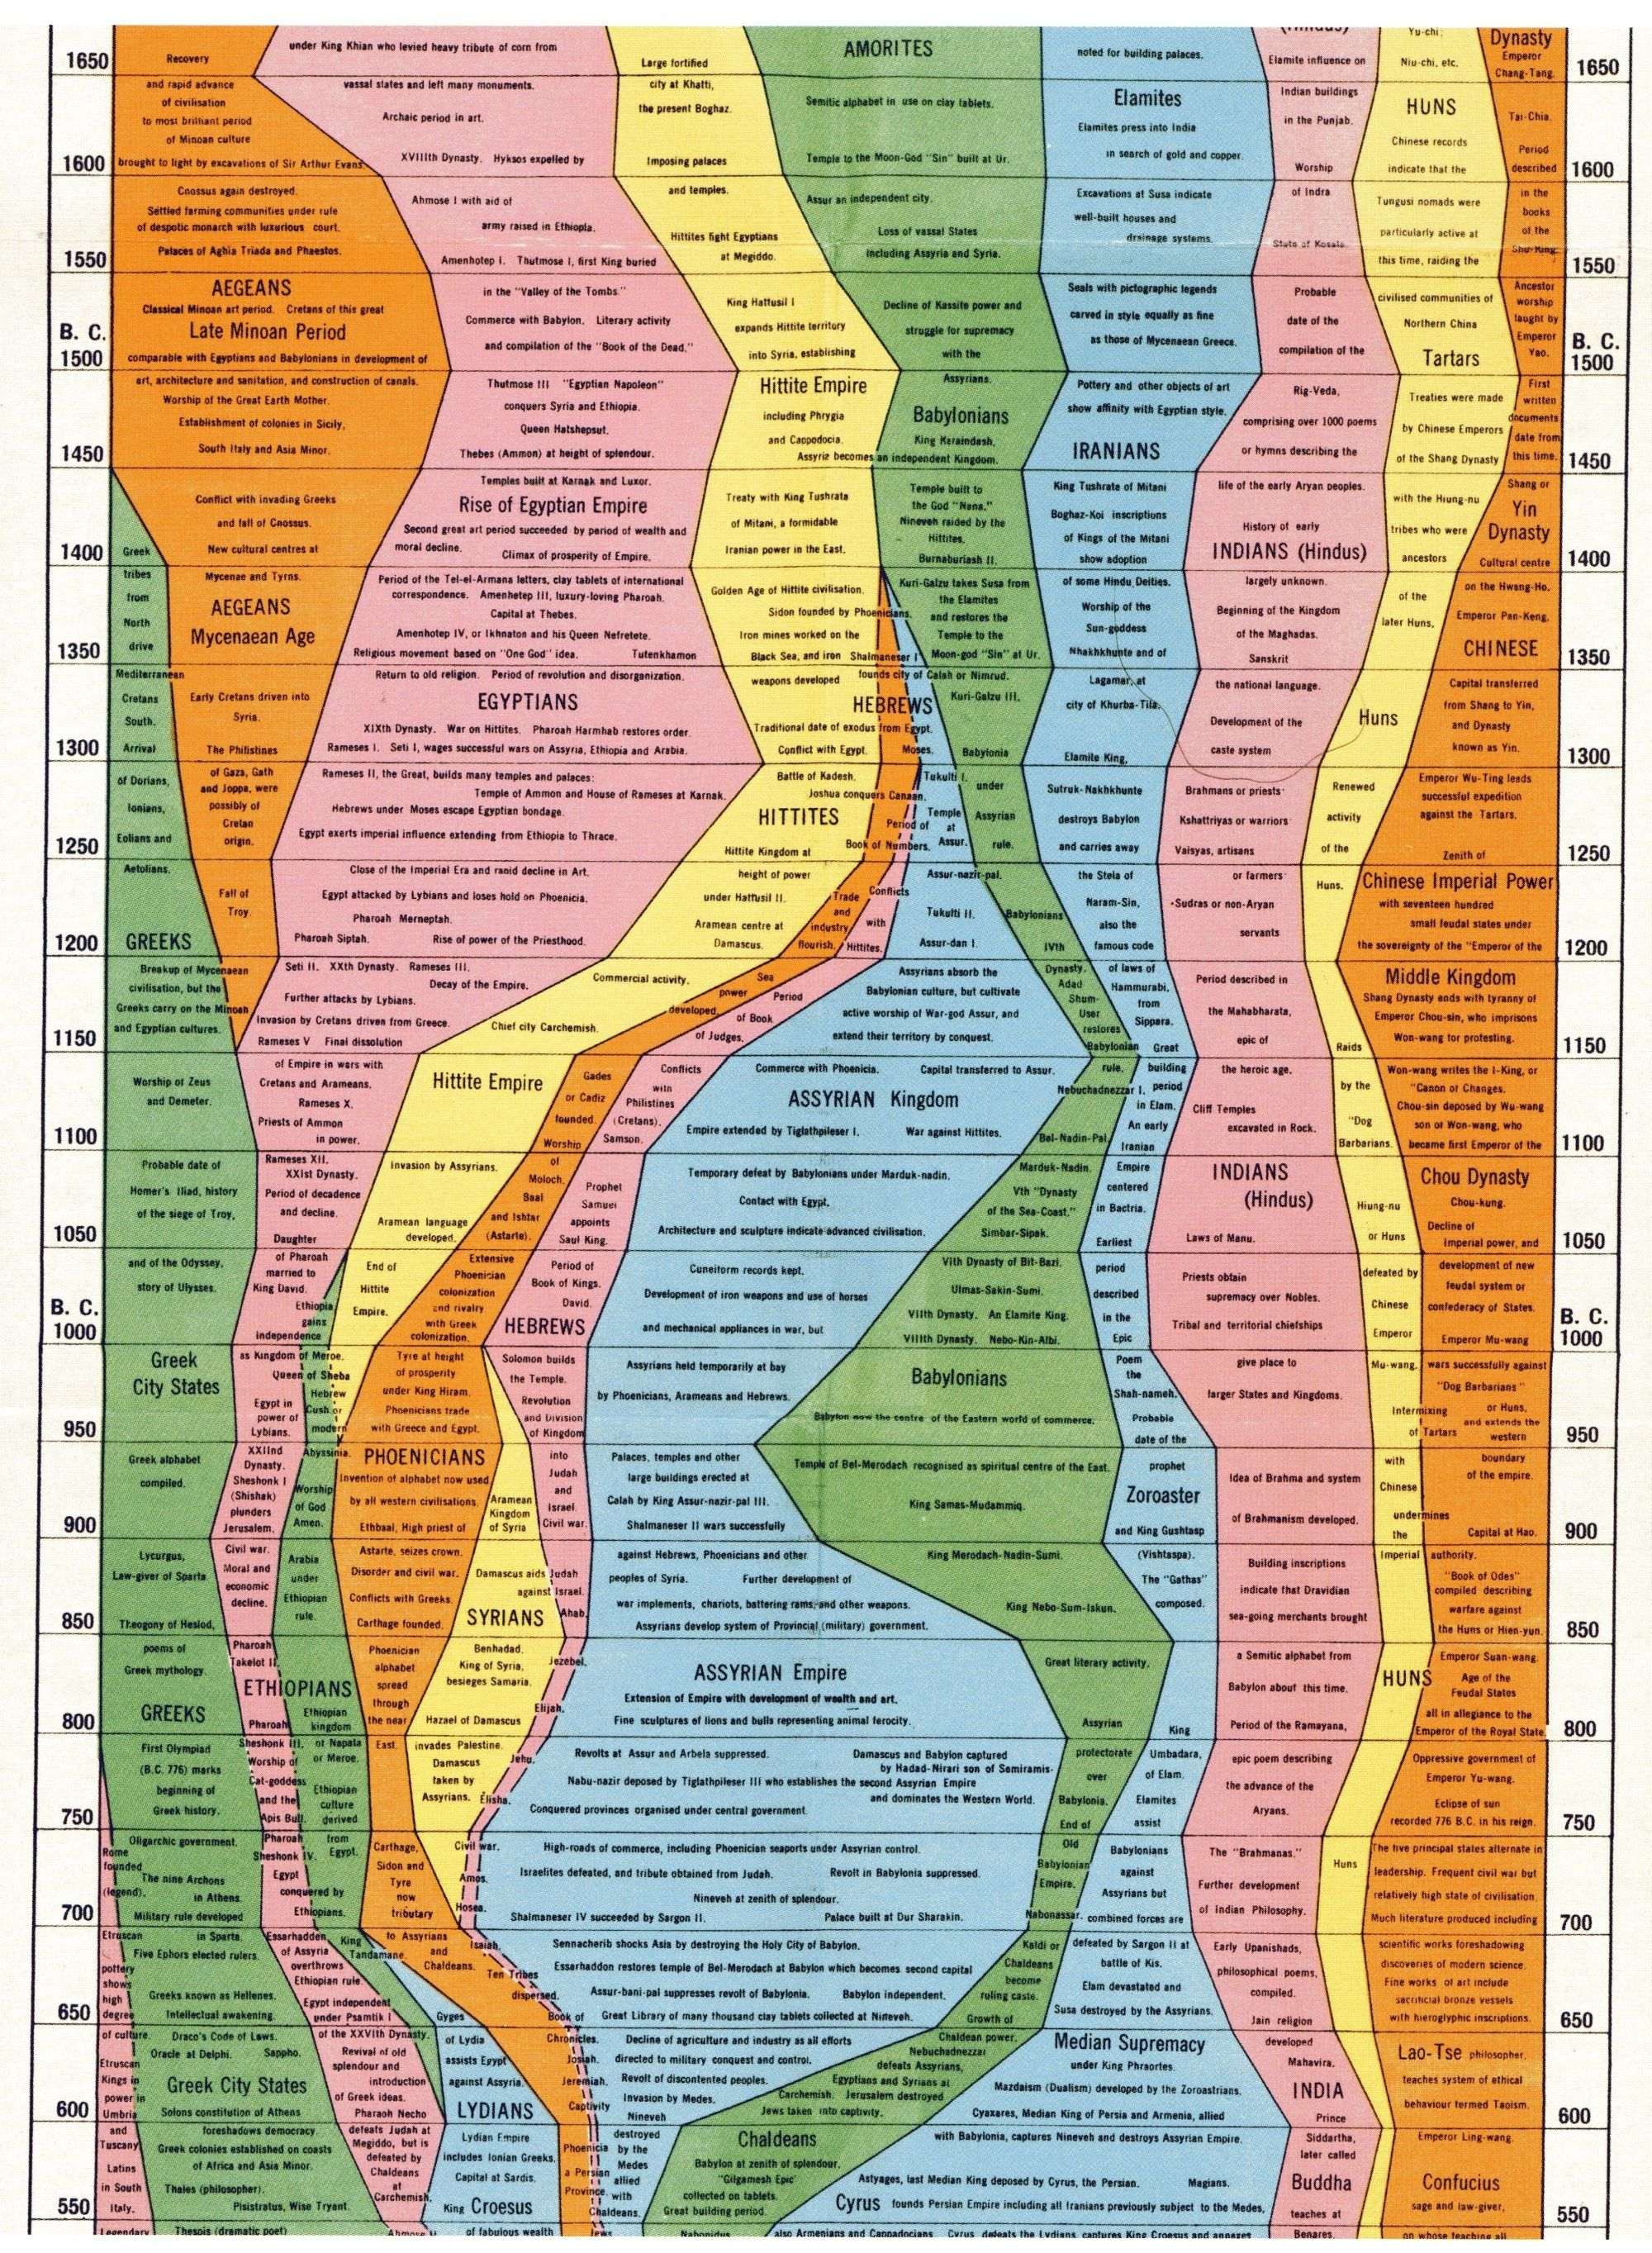 world history timeline Bible timeline dates based on king james authorized for a short bible history and links to more information, click on each bible person or event for a printable biblical timeline chart showing more detail and biblical events in parallel, click on the headings.